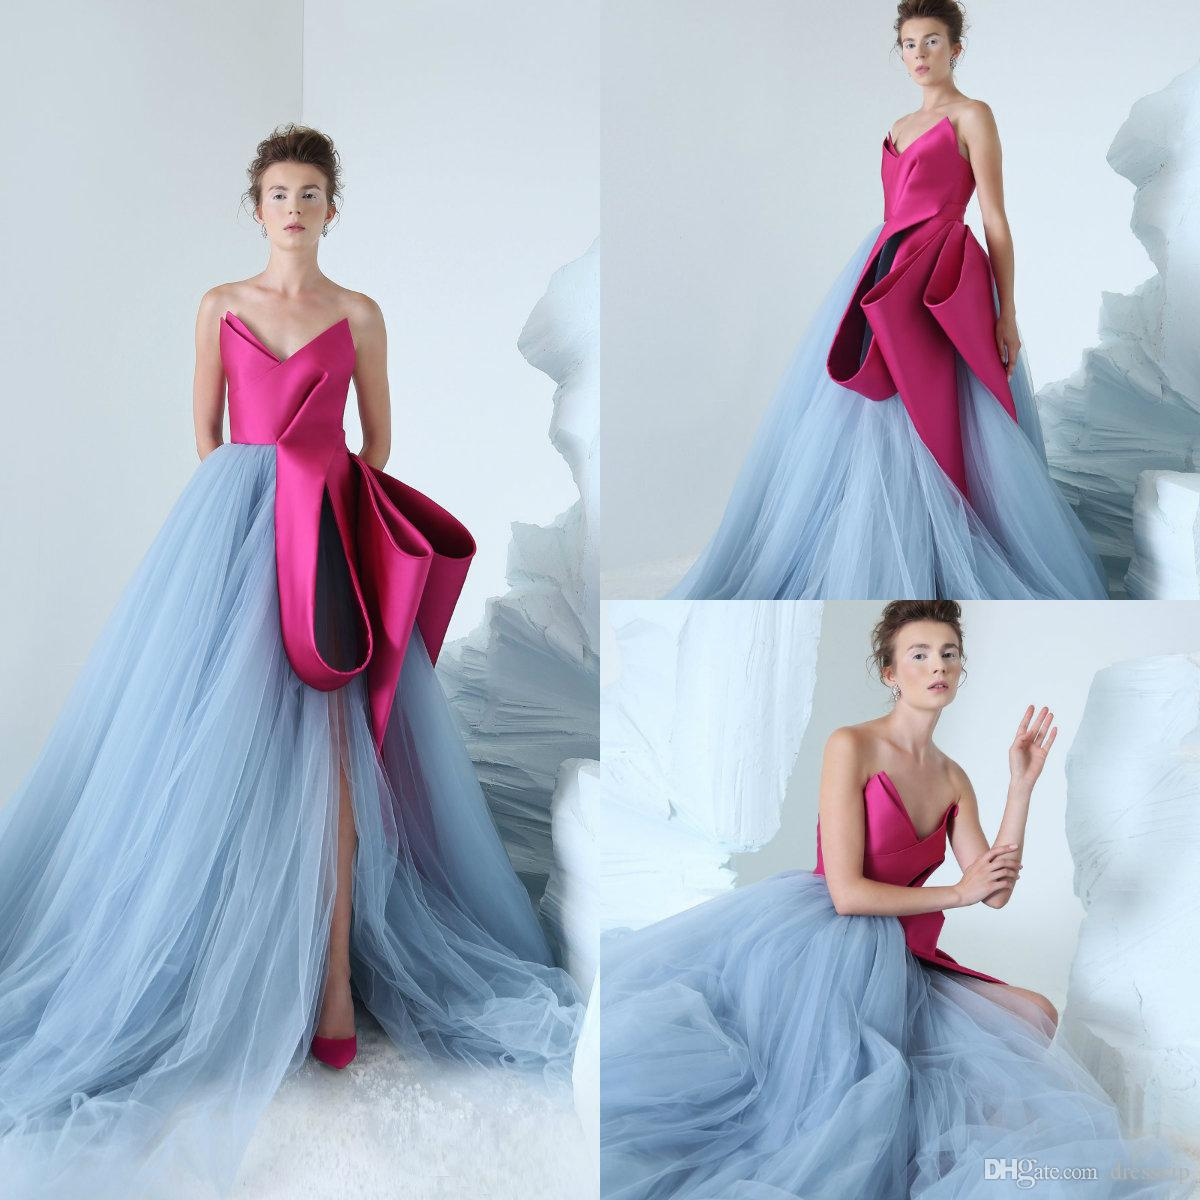 85662ebd80b 2019 Azzi Osta Gorgeous Prom Dresses V Neck Luxury Ruffles Side Split Tulle  Sweep Train Evening Dress Party Wear Custom Made Formal Gowns Evening Gown  Dress ...